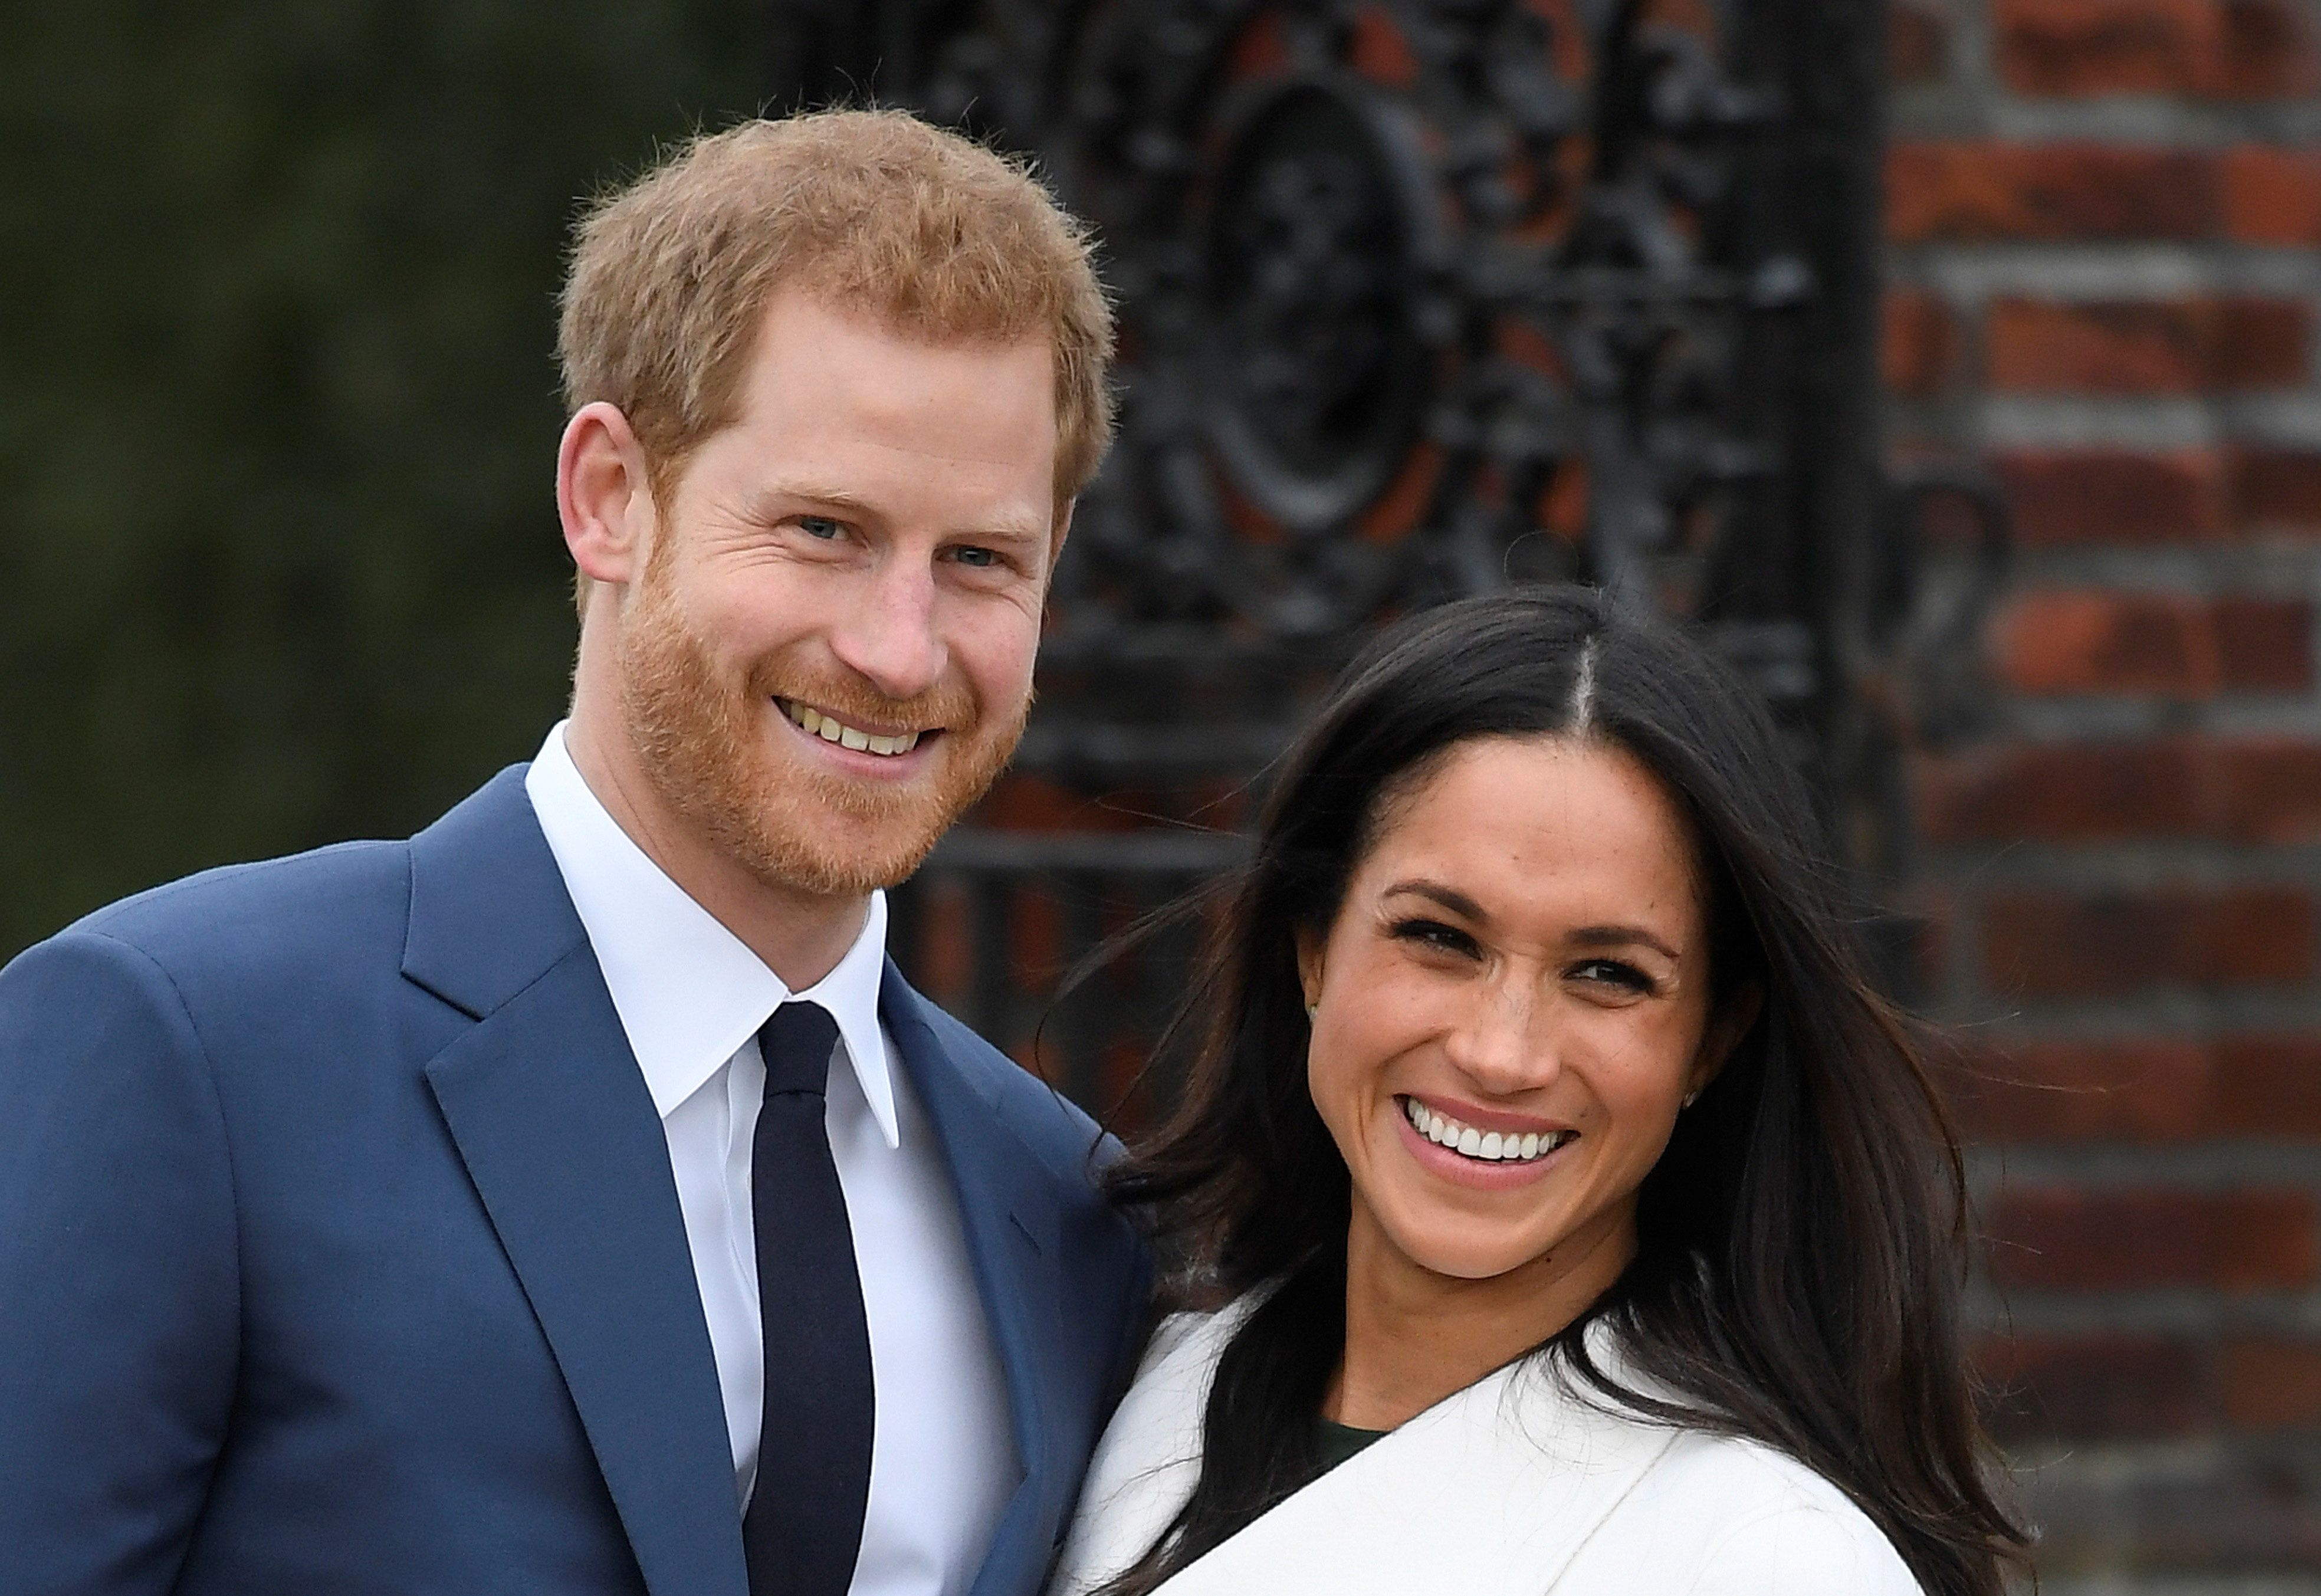 The wedding invitations for Prince Harry and Meghan Markleare made with gold American ink and printed on English paper.